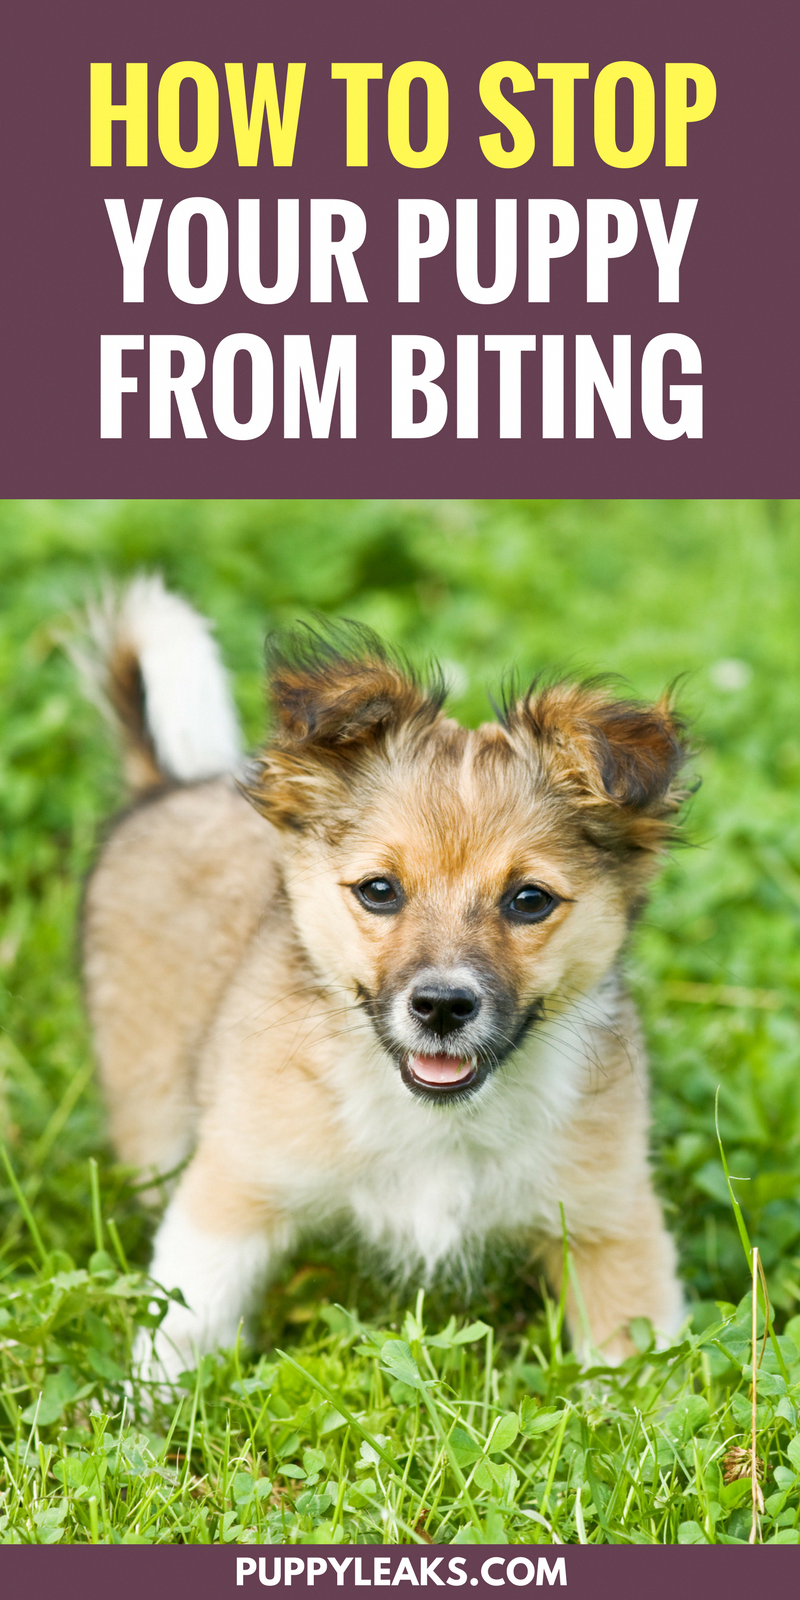 Dedicated Obedience Training In 2020 Puppy Training Biting Training Your Puppy Puppy Biting